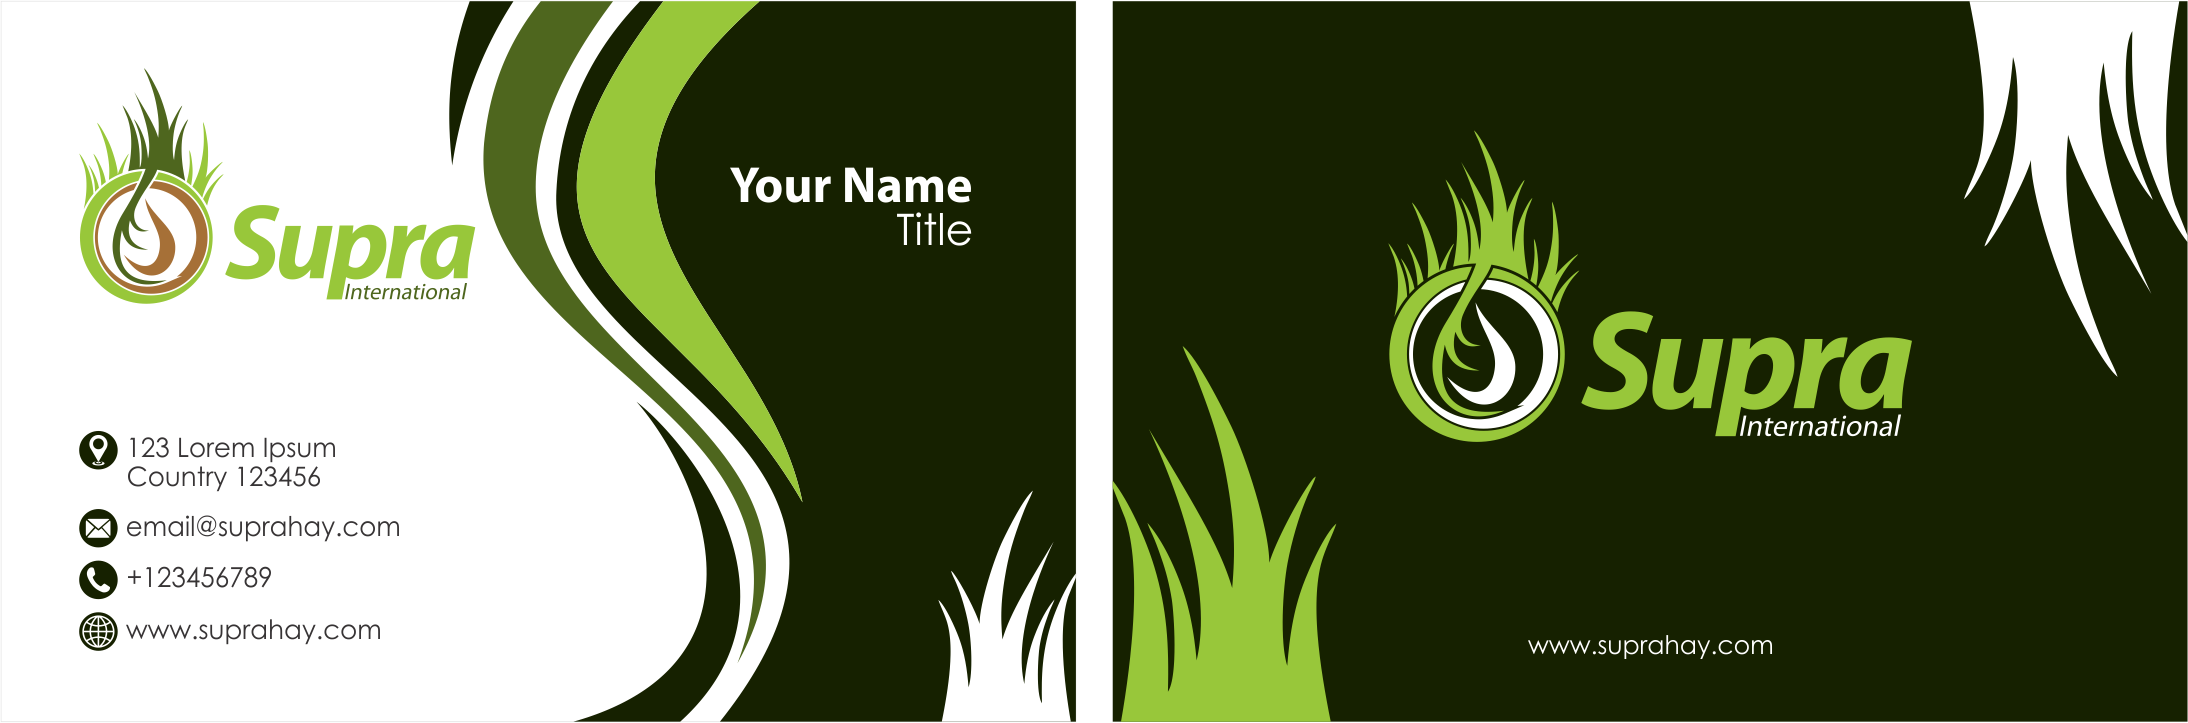 New logo and future design projects for agriculture seed company.